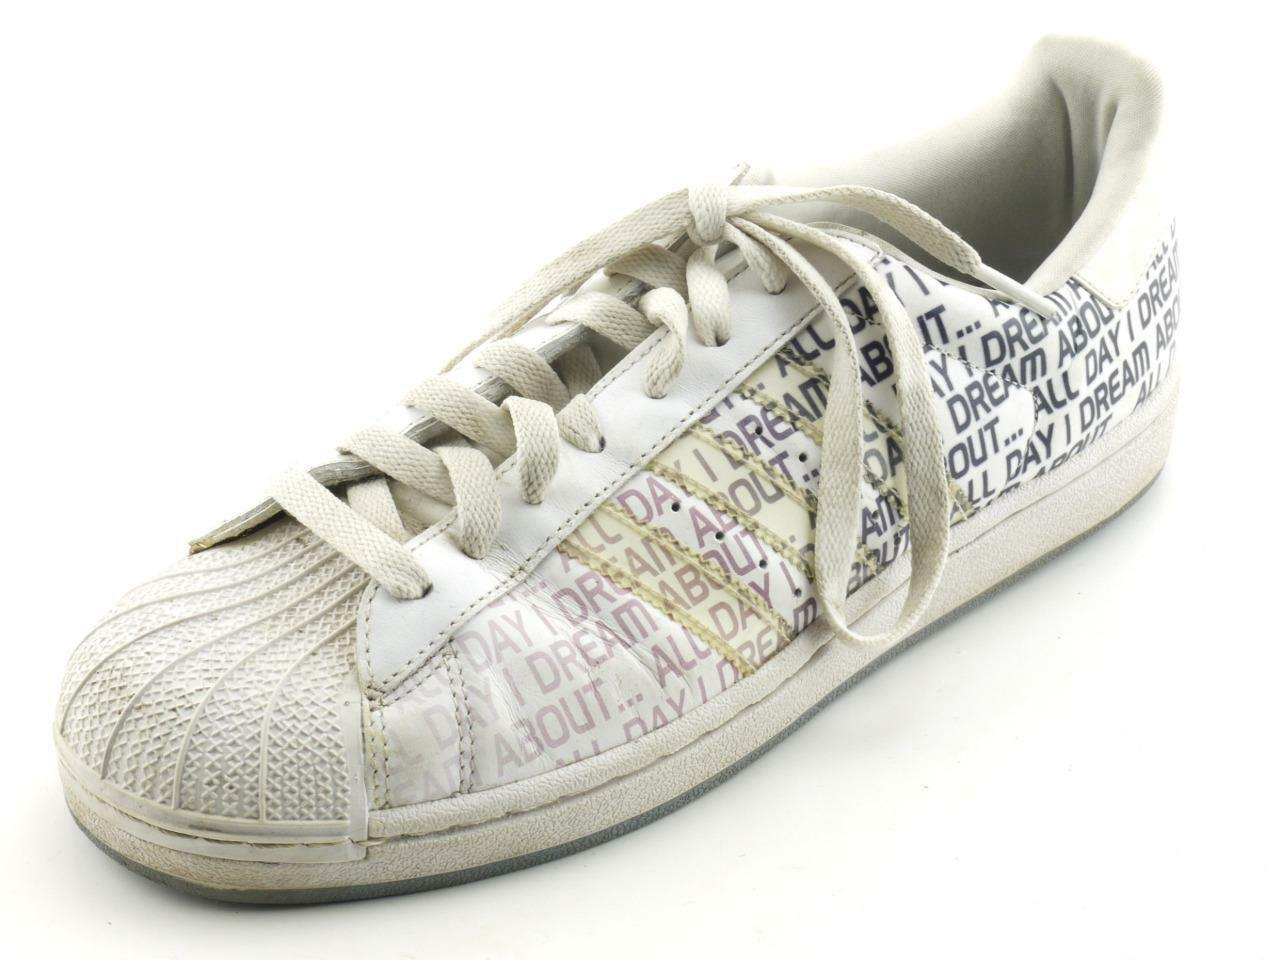 EXC White ADIDAS 'ALL DAY I DREAM ABOUT...' Ombre Running Fashion Sneakers 9.5 Special limited time